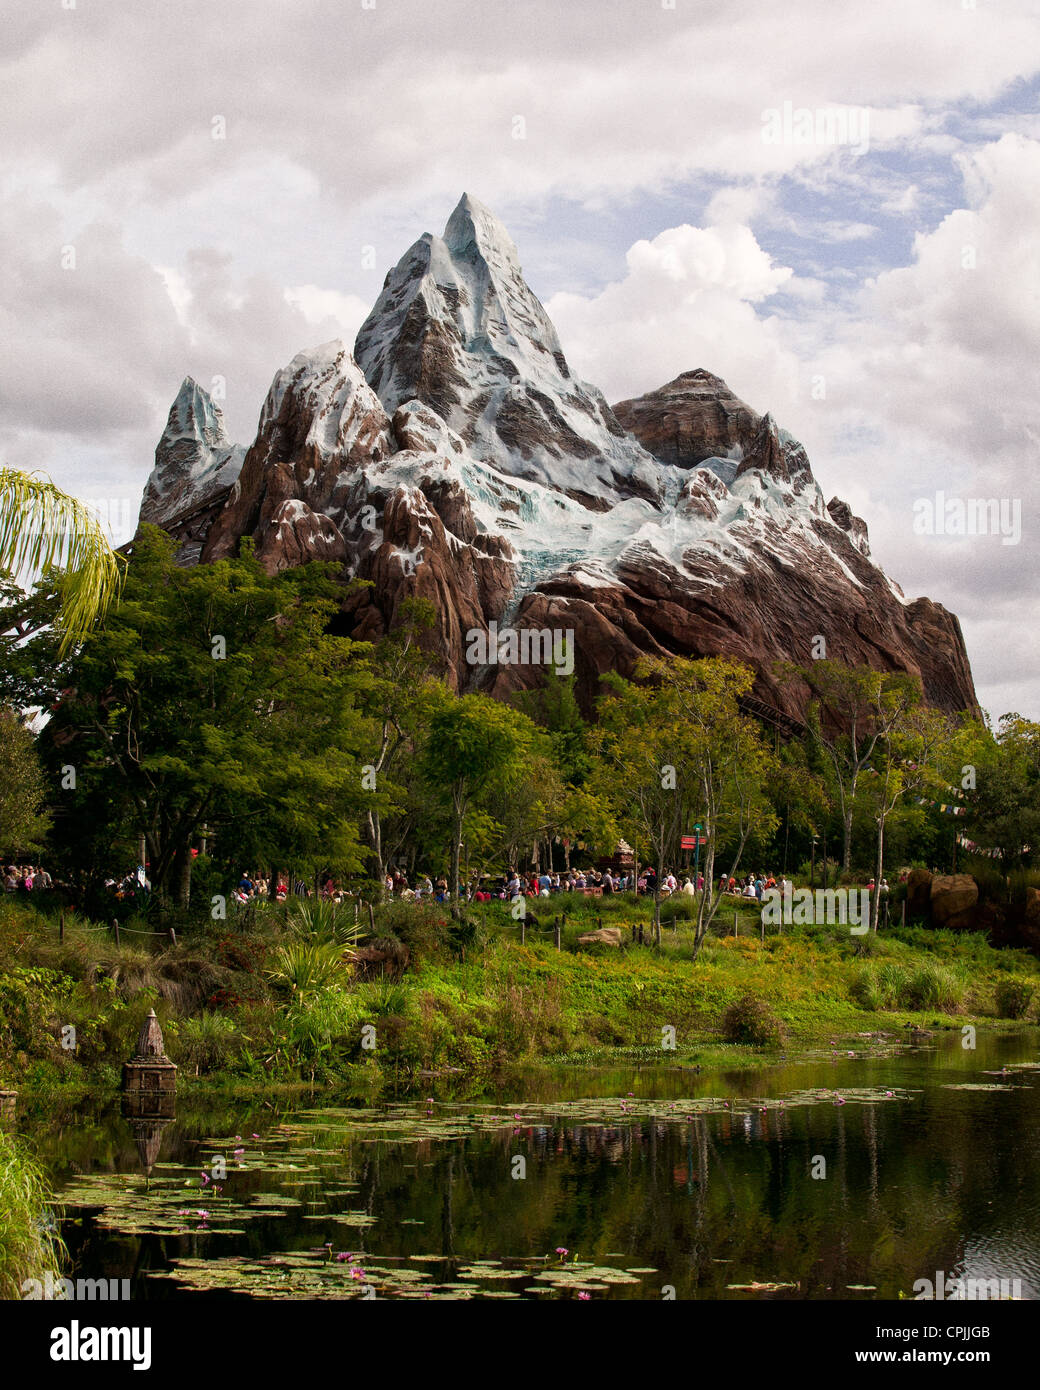 Animal Kingdom Disney Expedition Everest Florida Orlando USA on a cloudy day. - Stock Image